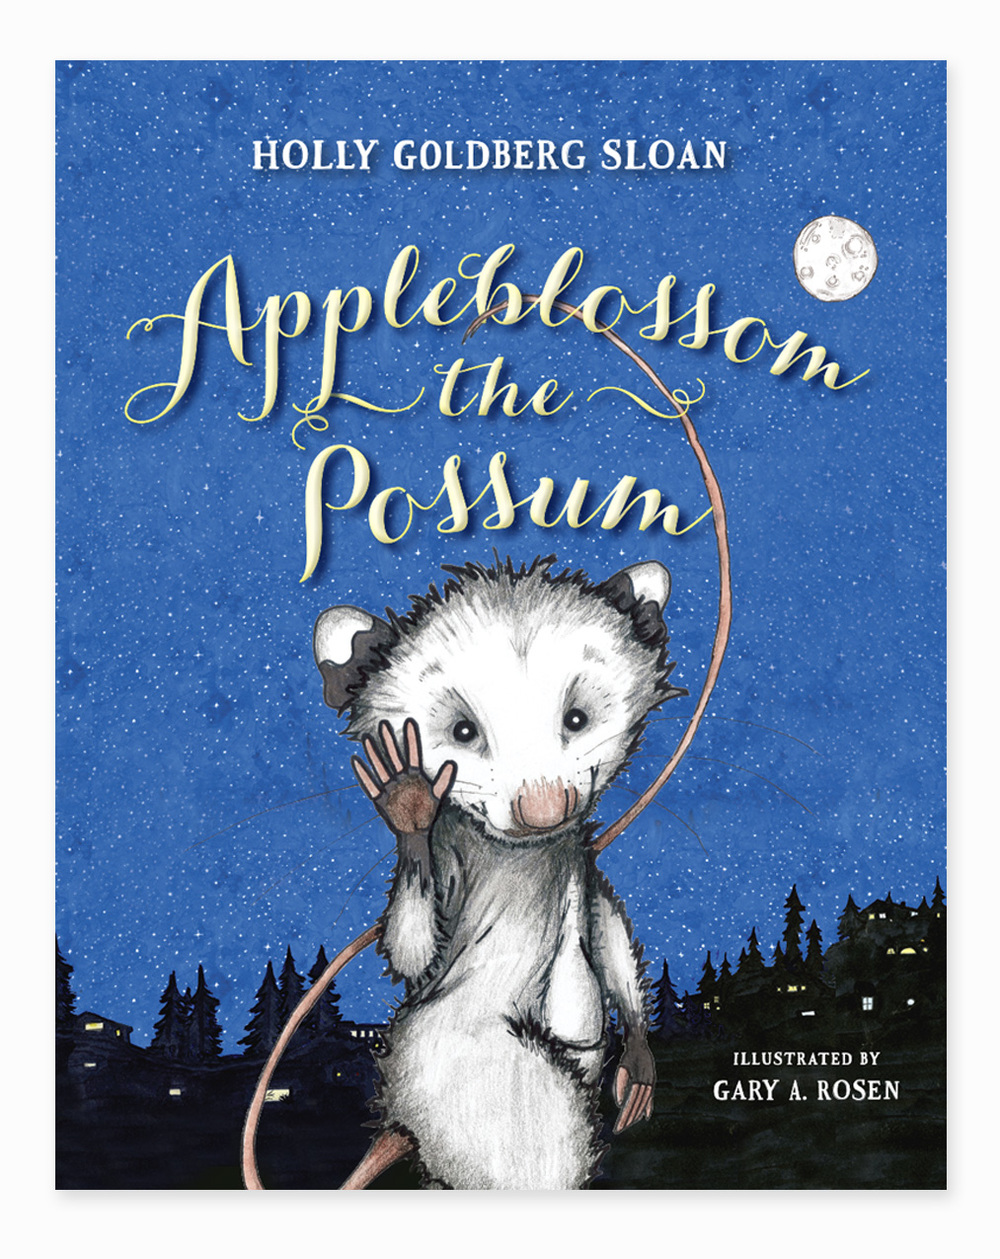 A_AppleblossomthePossum_JKT_Final.jpg